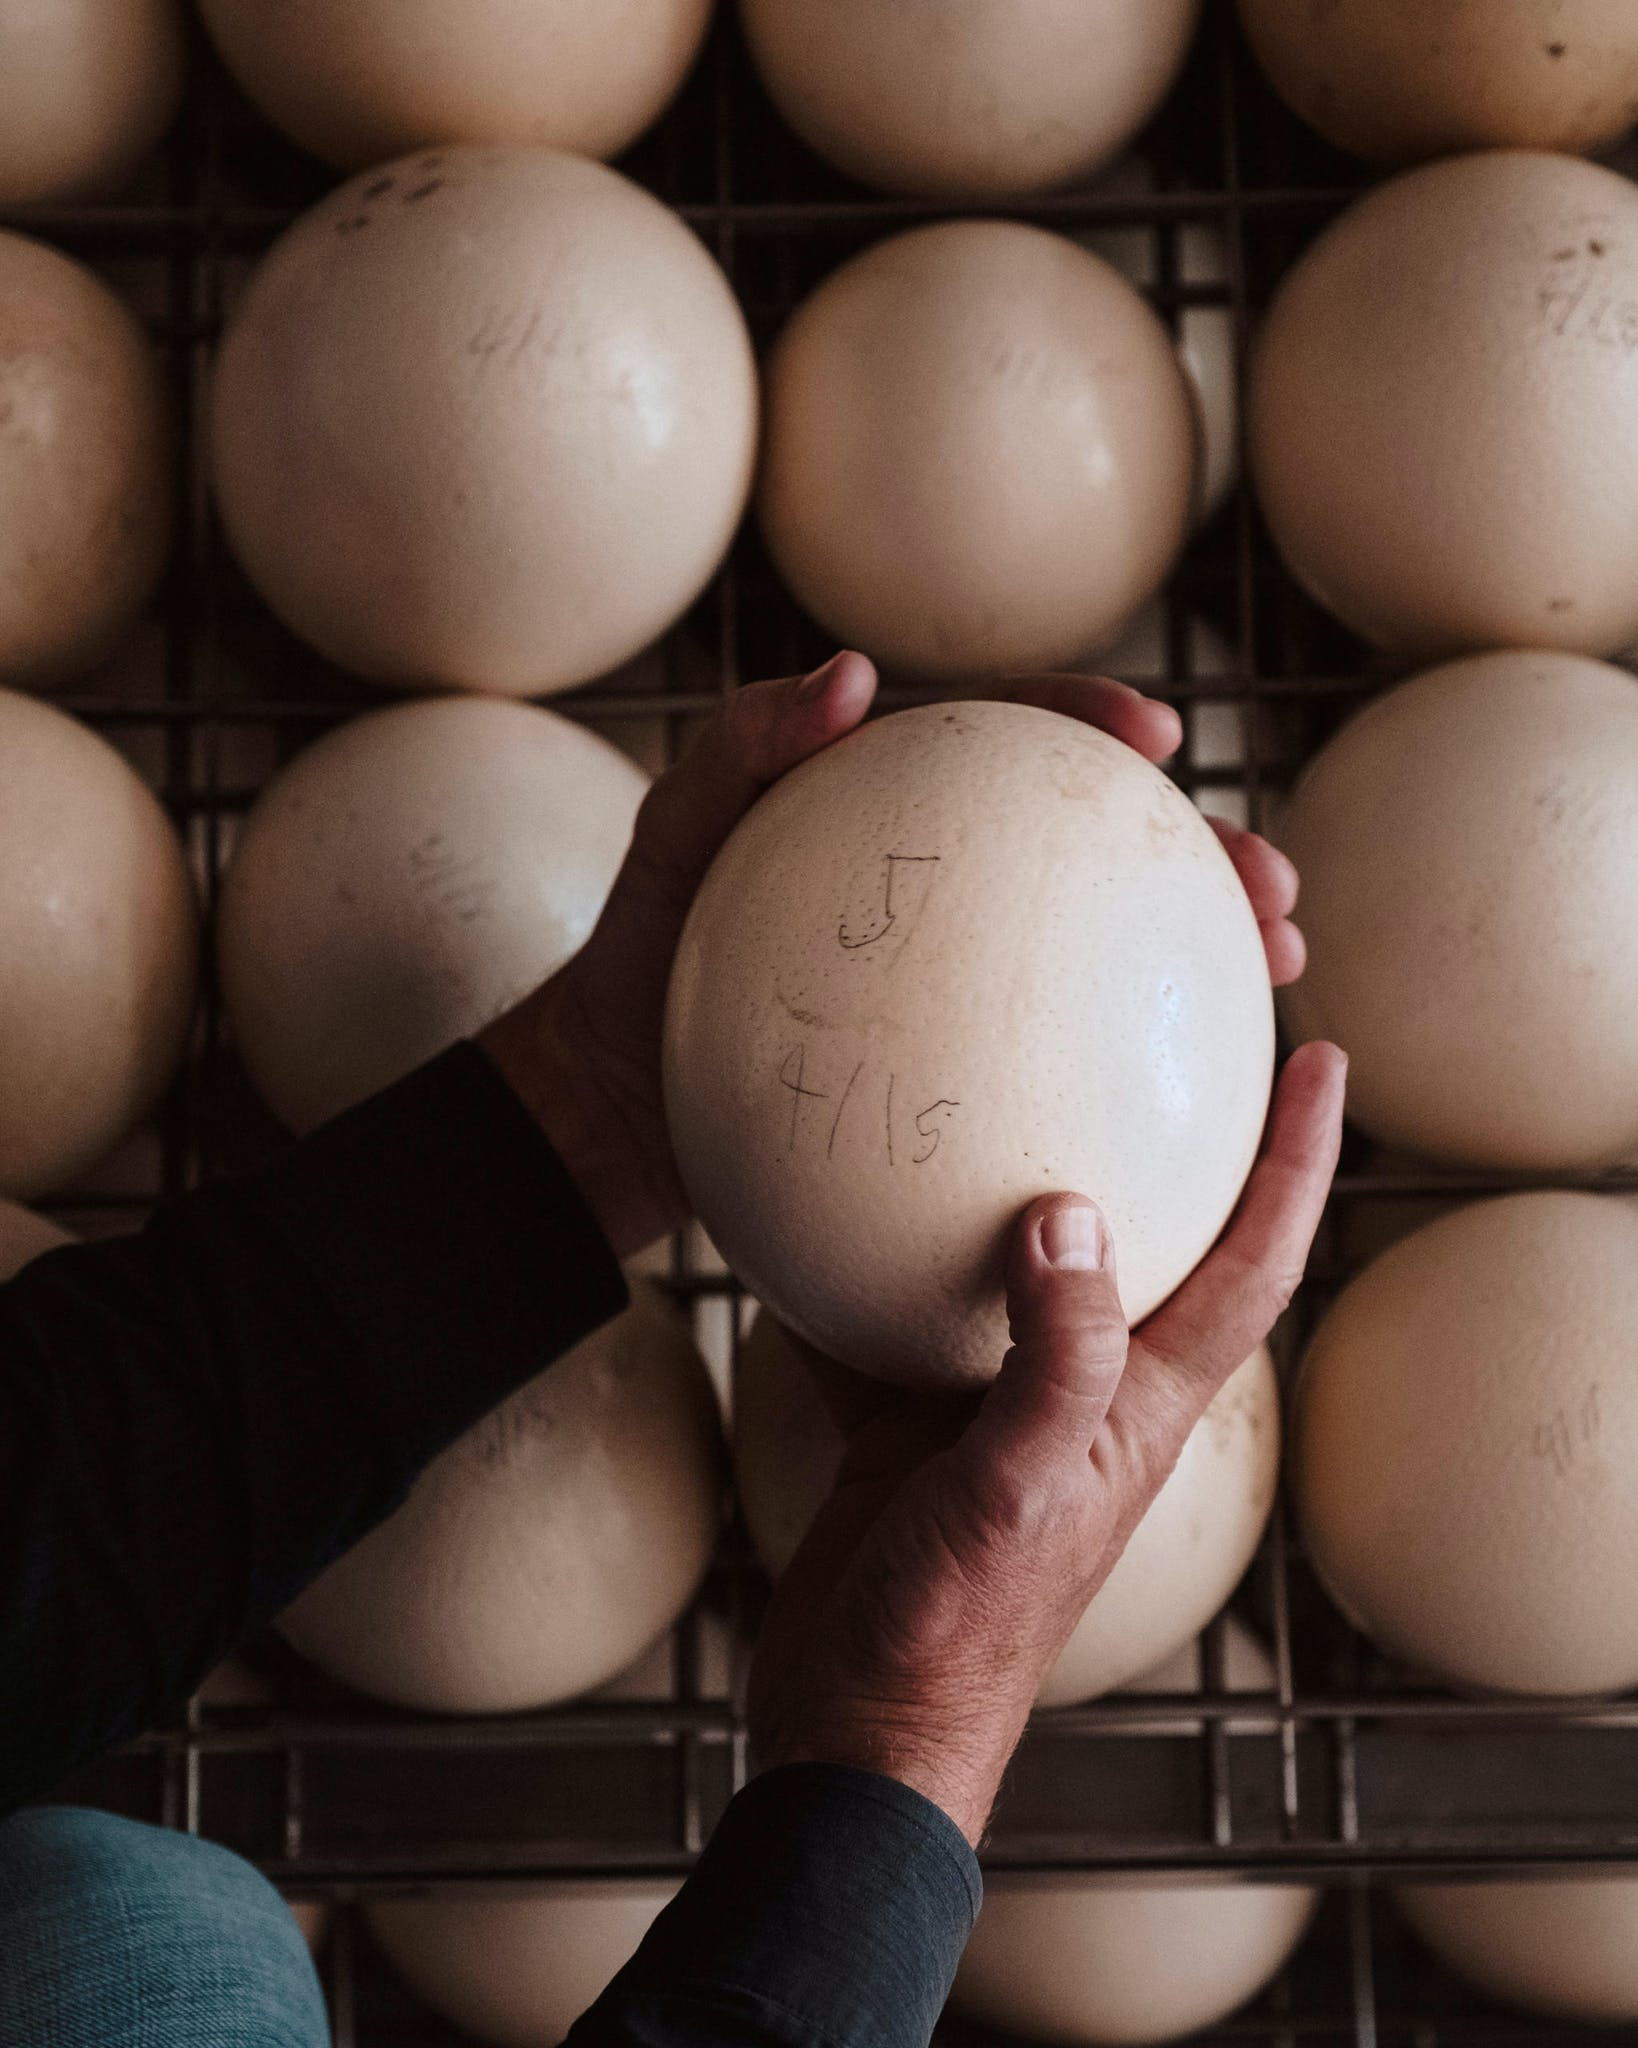 Boyd checking ostrich eggs before they go into the incubator.